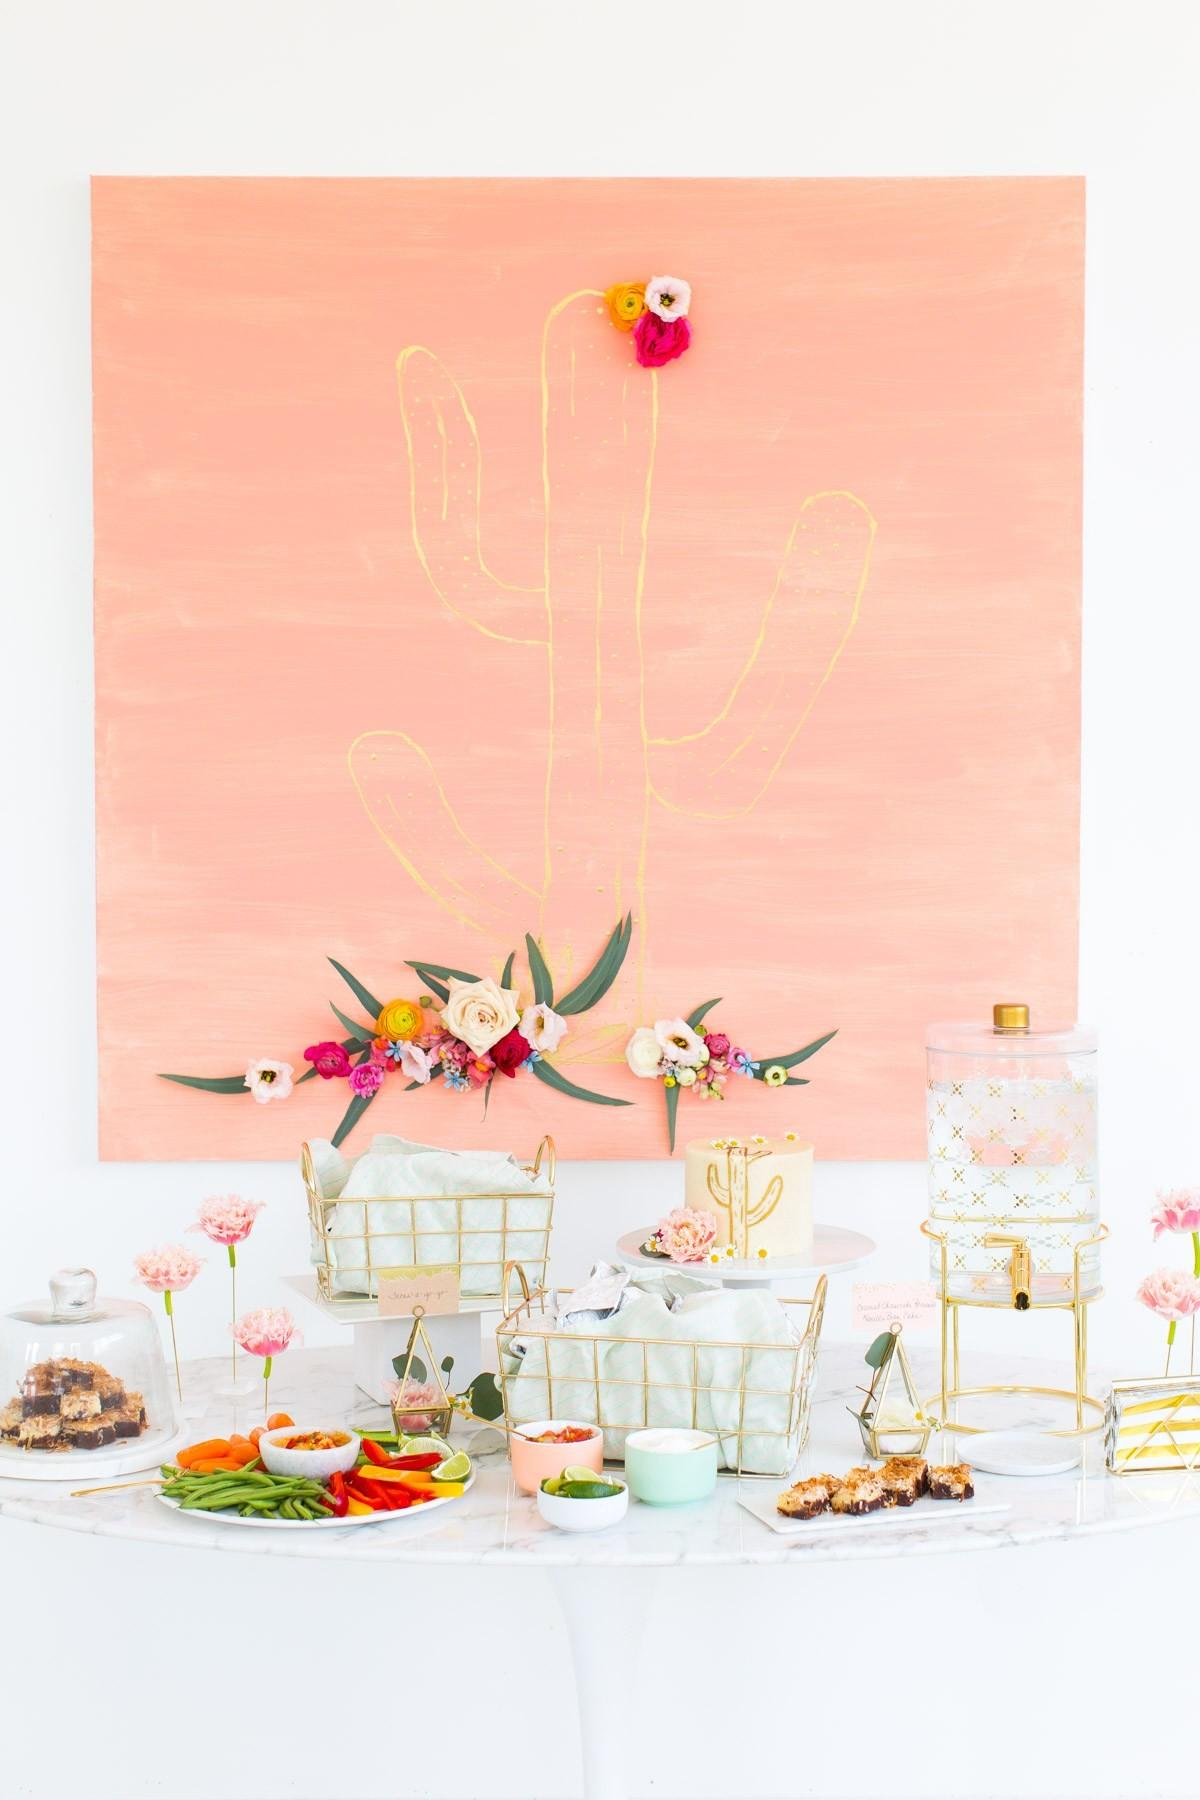 Festive Summer Party Themes Interior Design